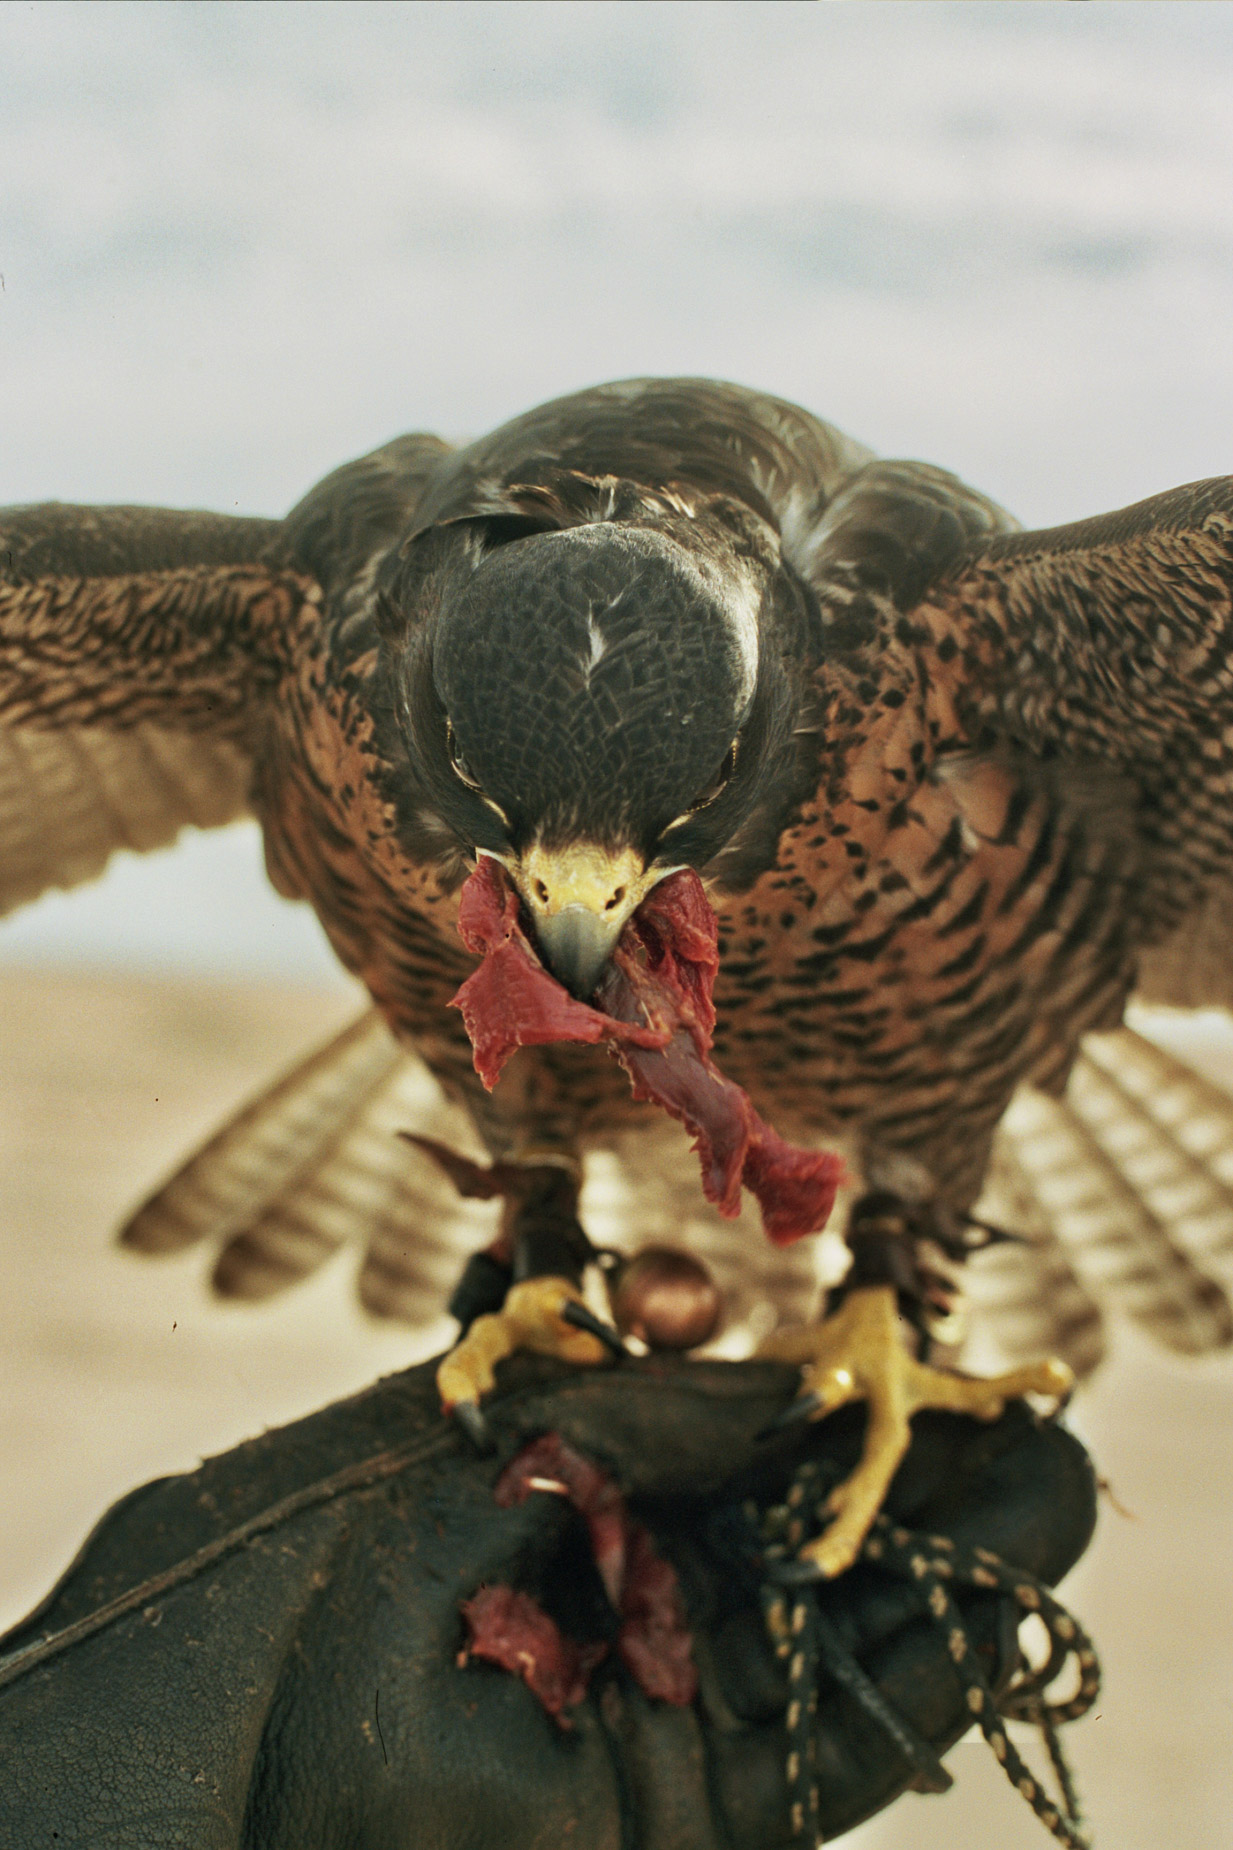 alex_aristei_Falconry_022